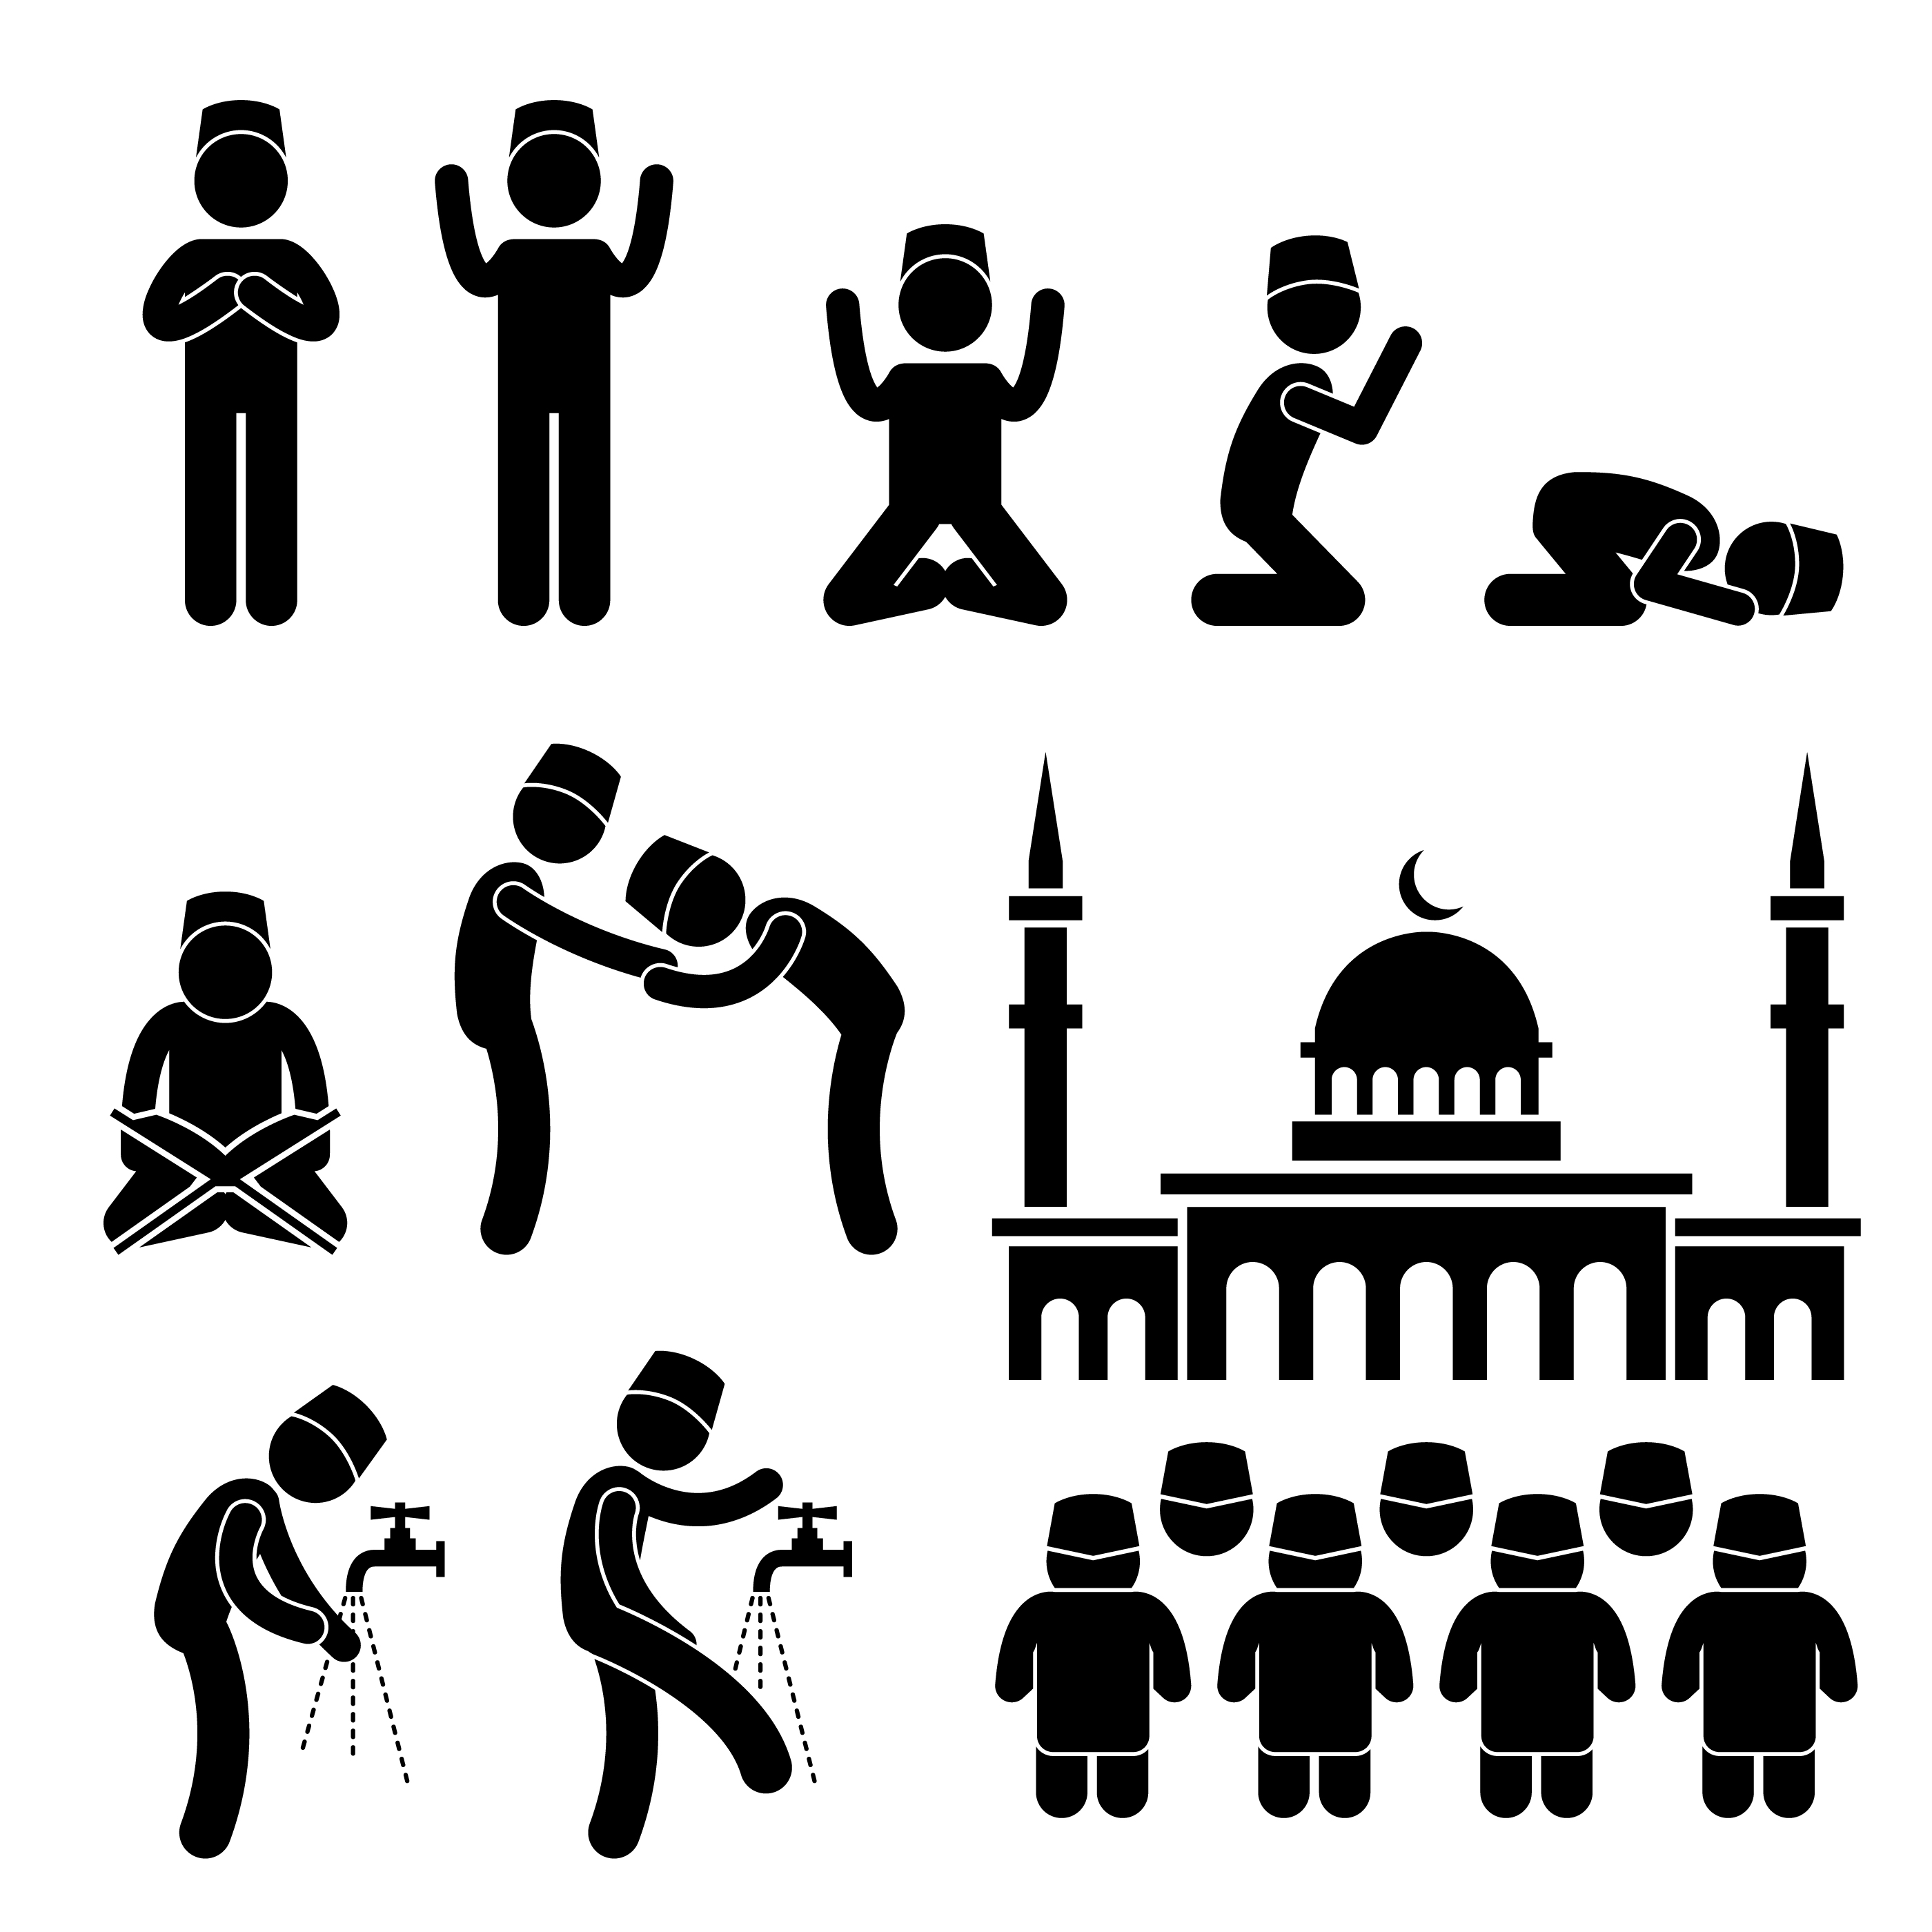 islam muslim religion culture tradition stick figure pictogram icon download free vectors clipart graphics vector art https www vecteezy com vector art 349303 islam muslim religion culture tradition stick figure pictogram icon